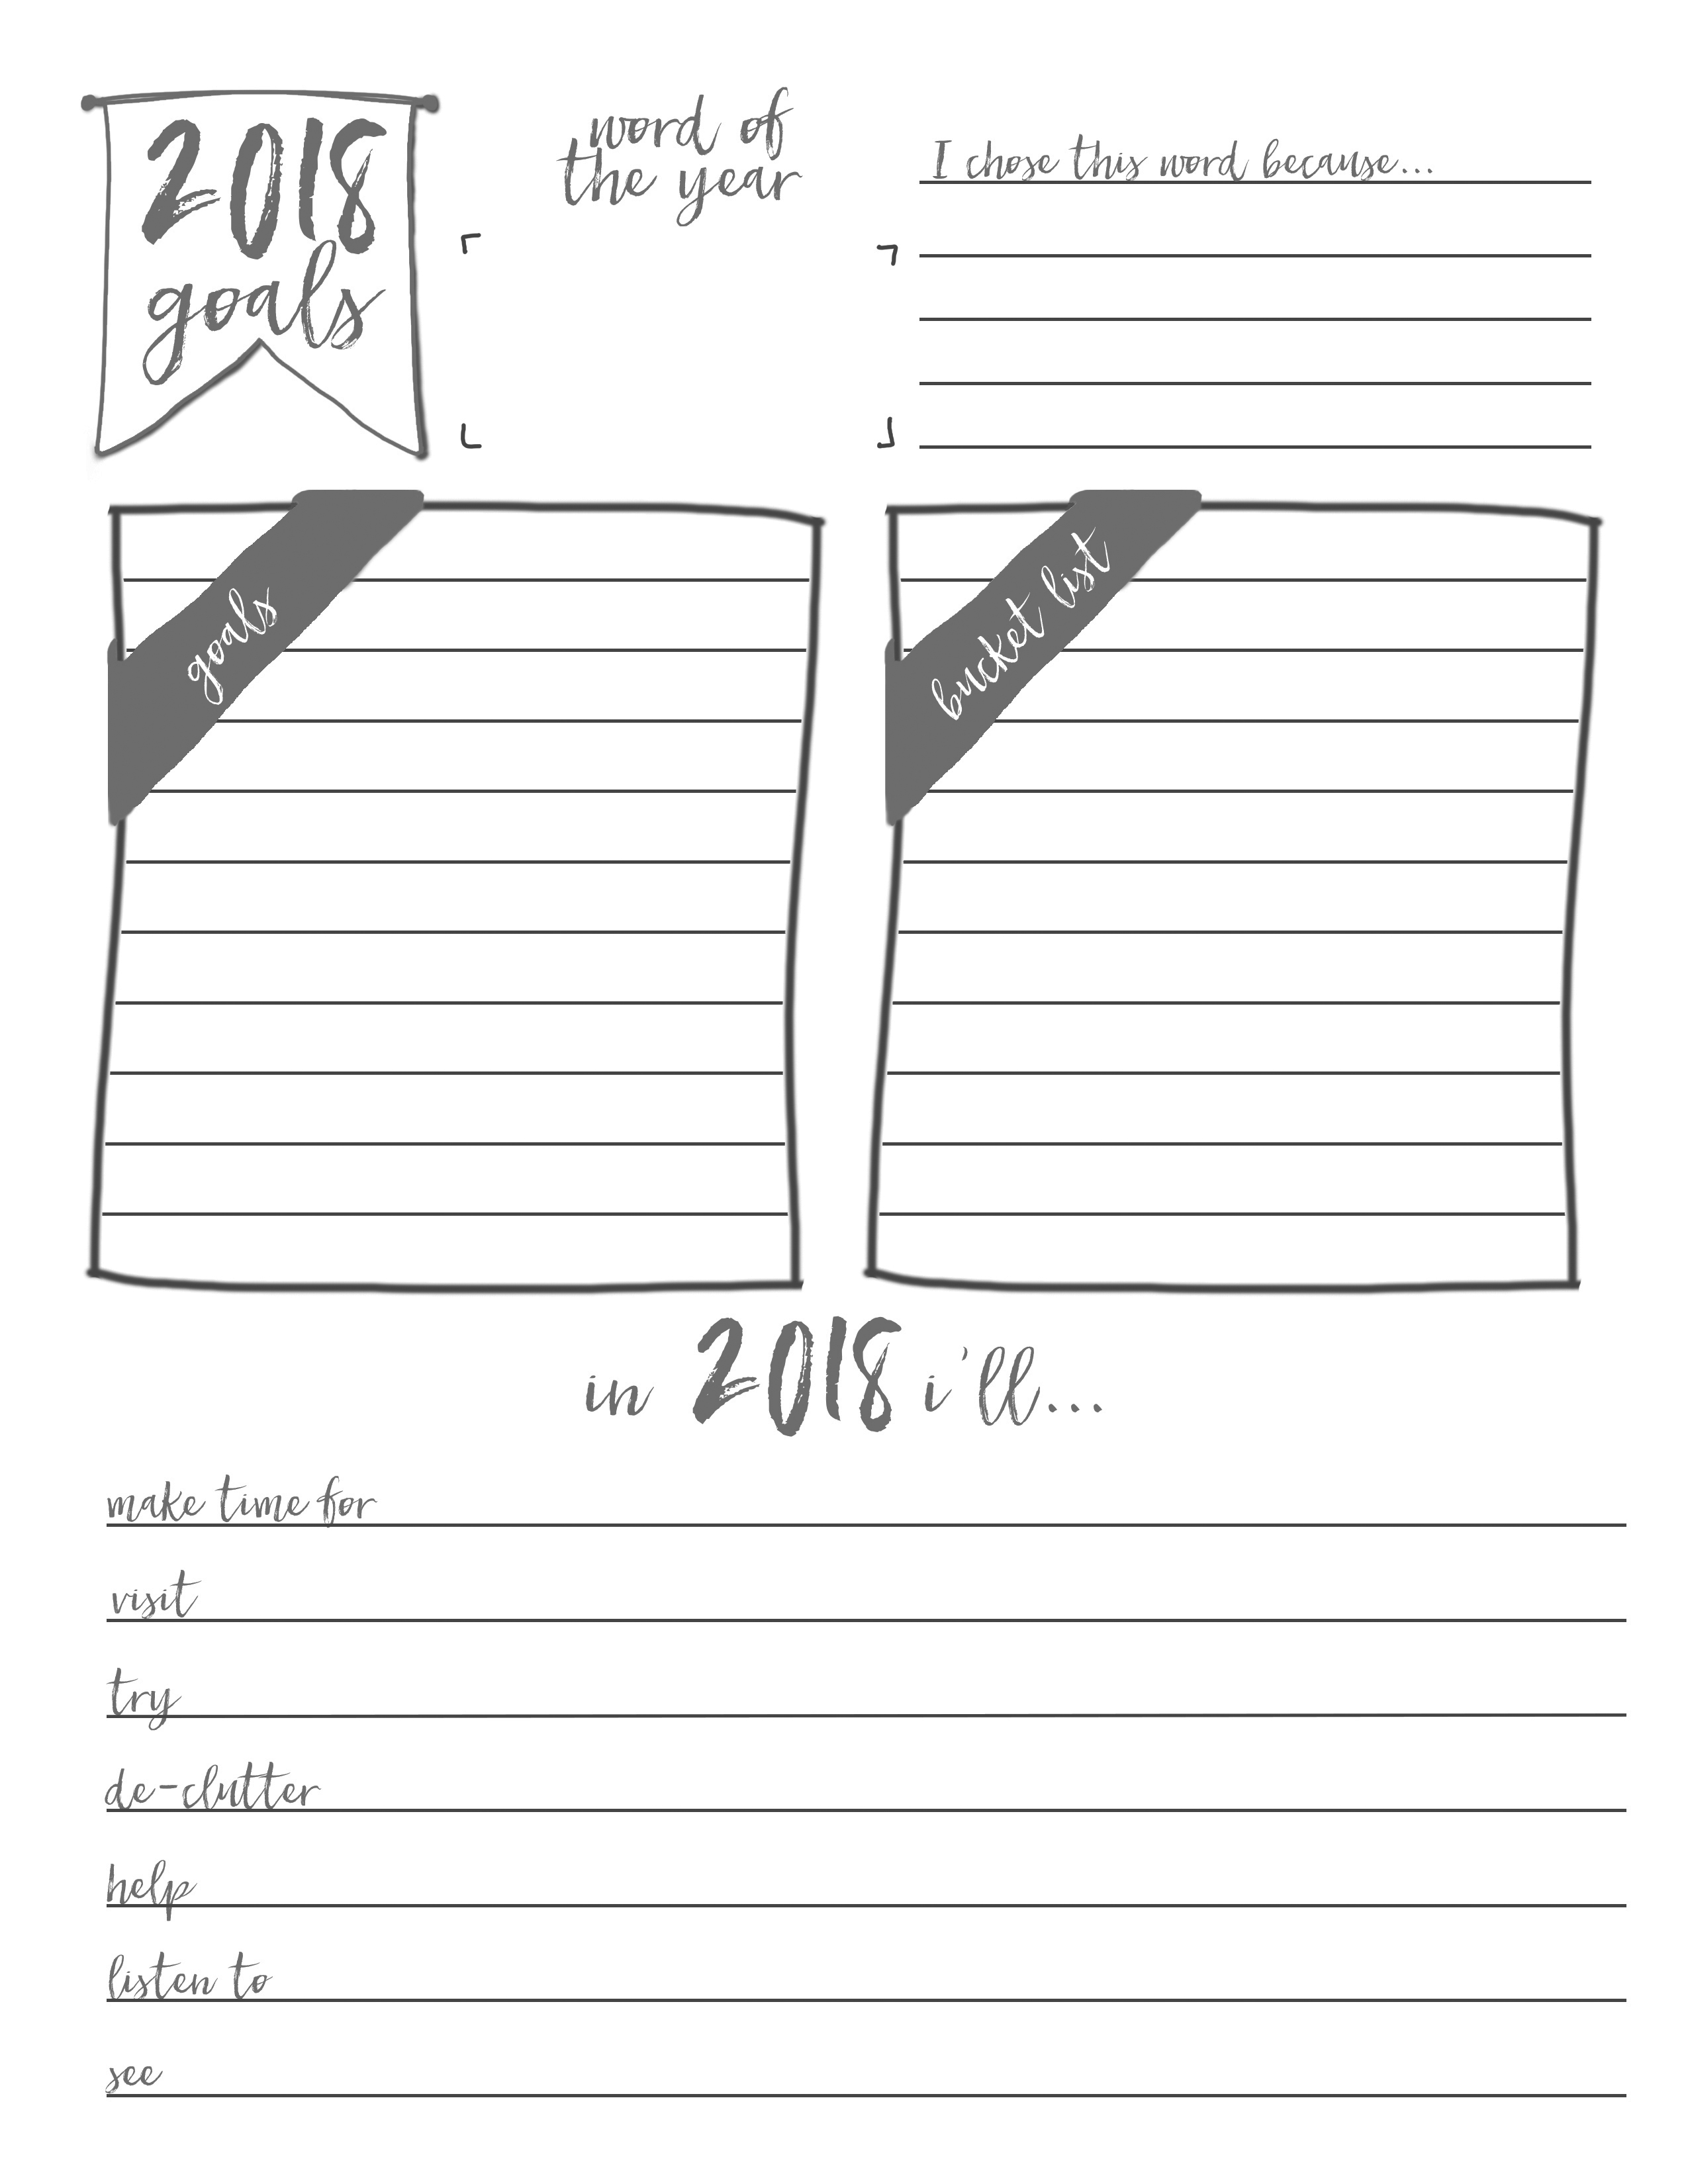 Free End of Year Planner Printables & New Year Goals Planner Printable. Free Yearly Review Printables for The Happy Planner, Erin Condren, Recollections, Filofax, and more. #freeplannerprintables #plannerprintables #happyplanner #erincondren #freeprintables